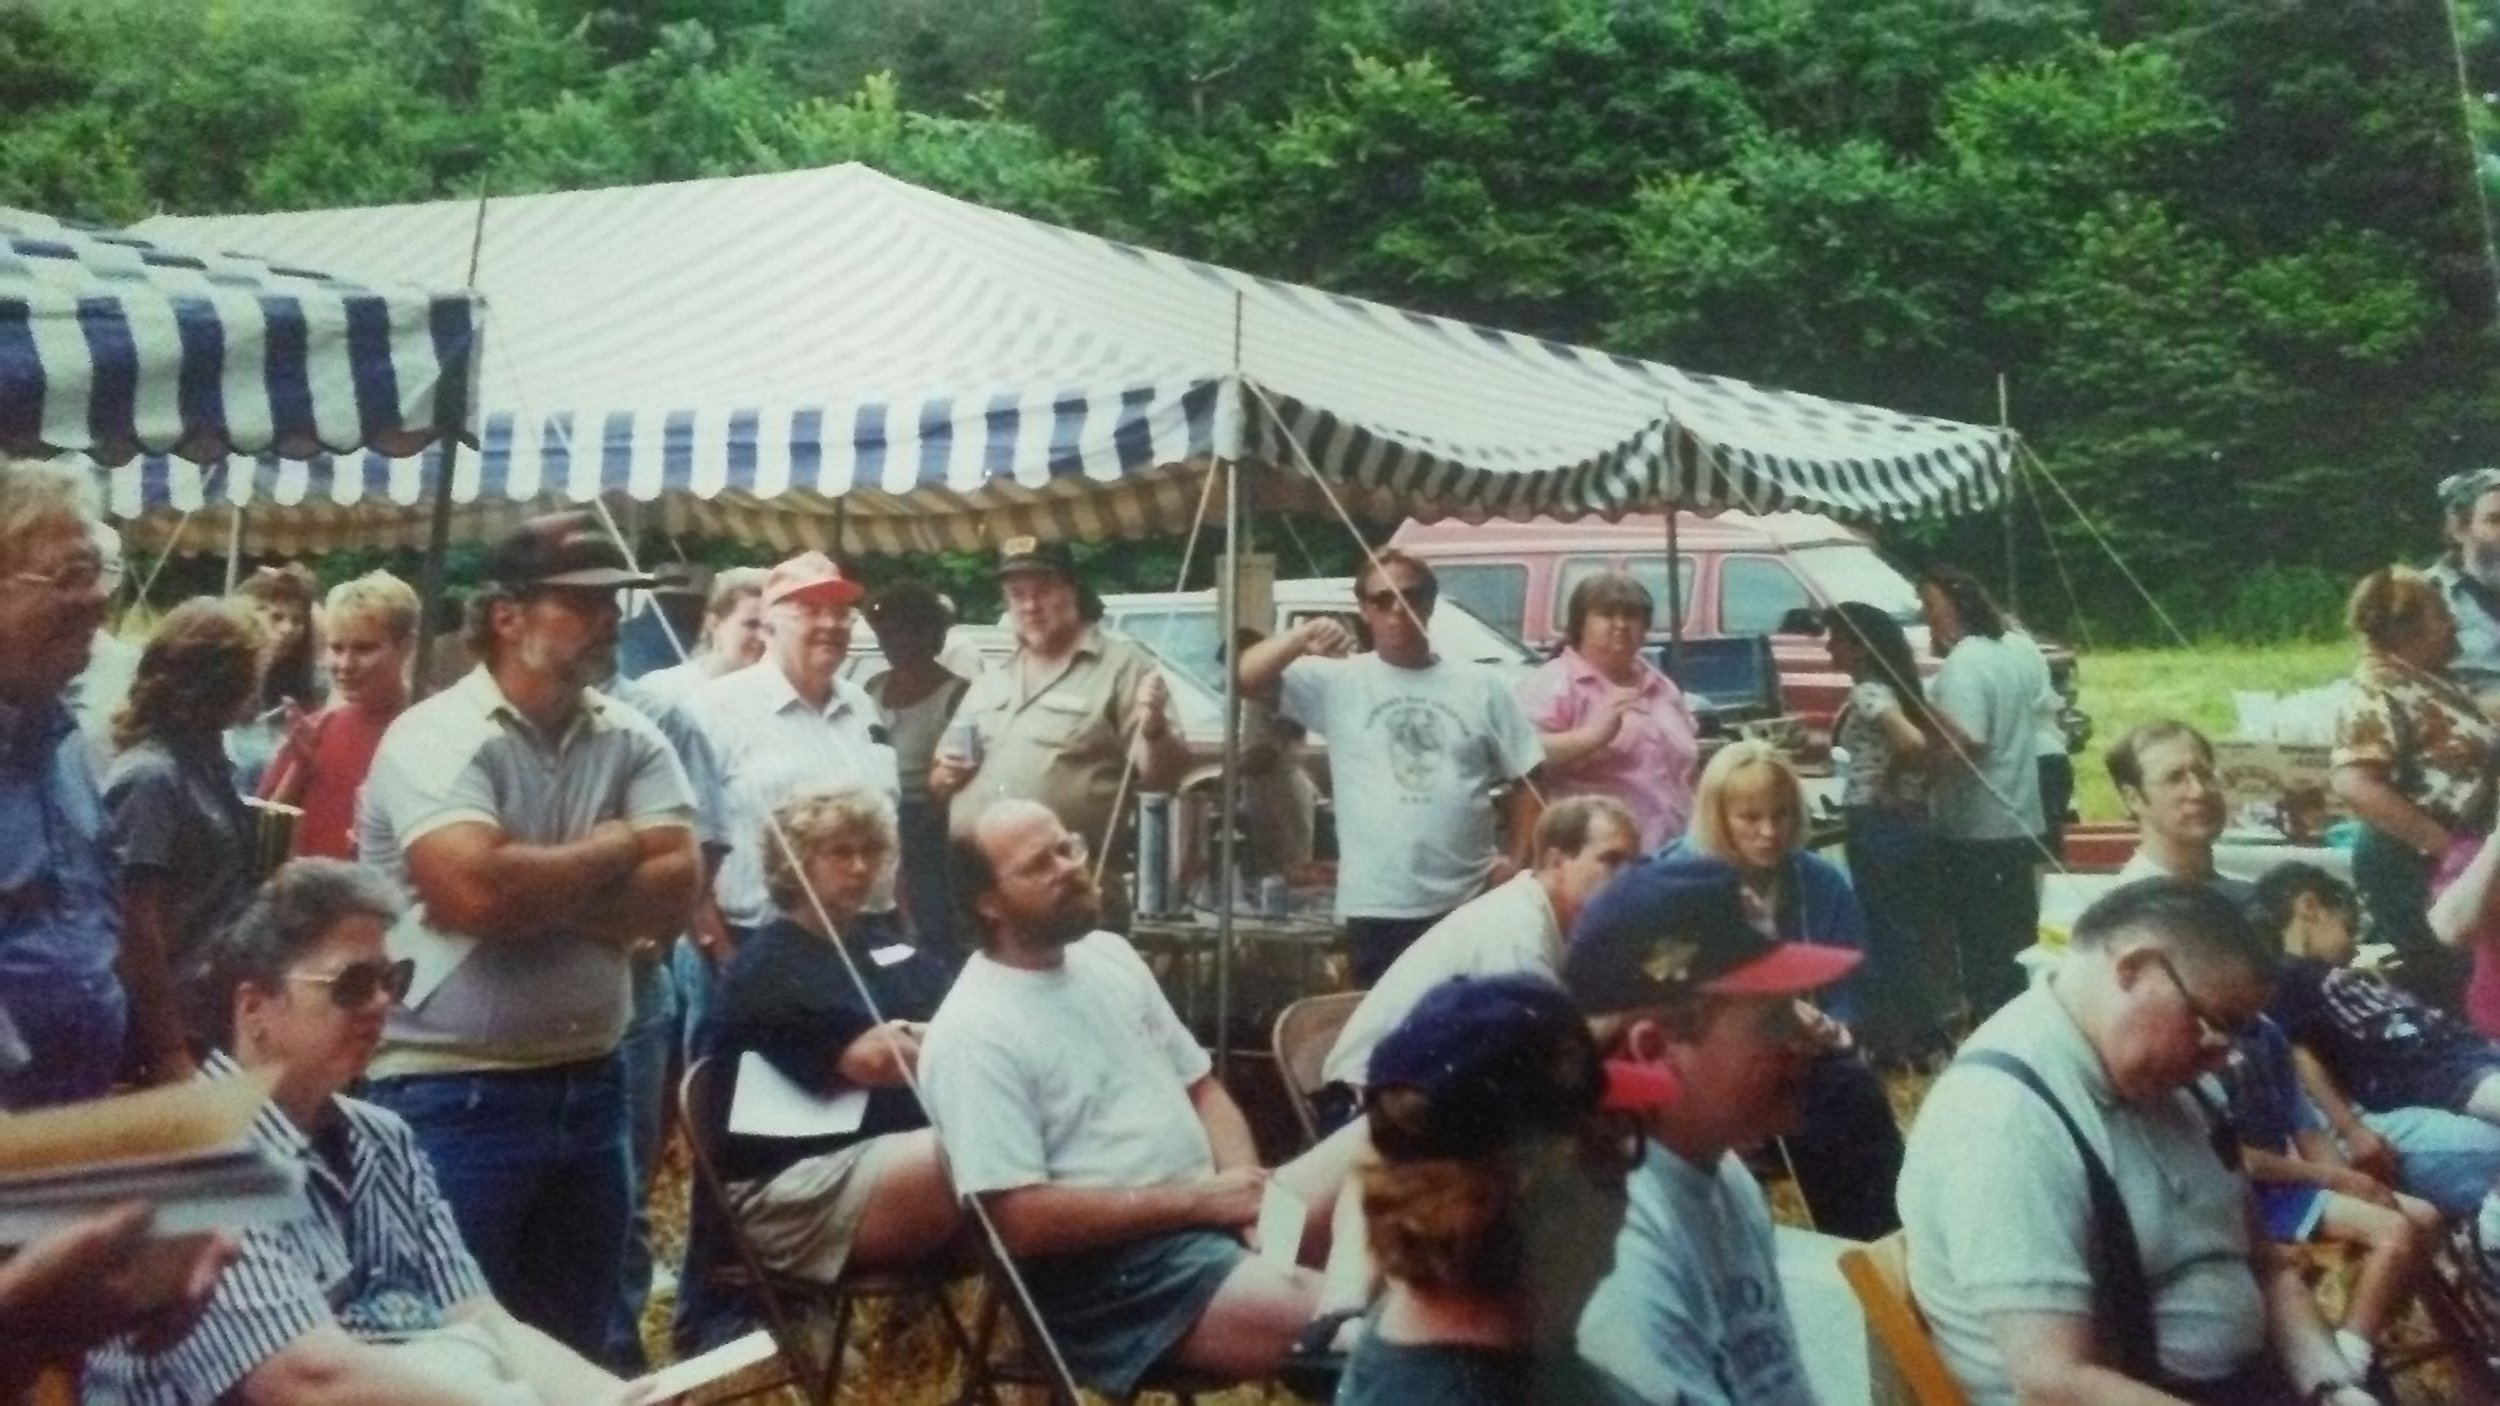 The 1st chapter picnic at Seaman's Fort